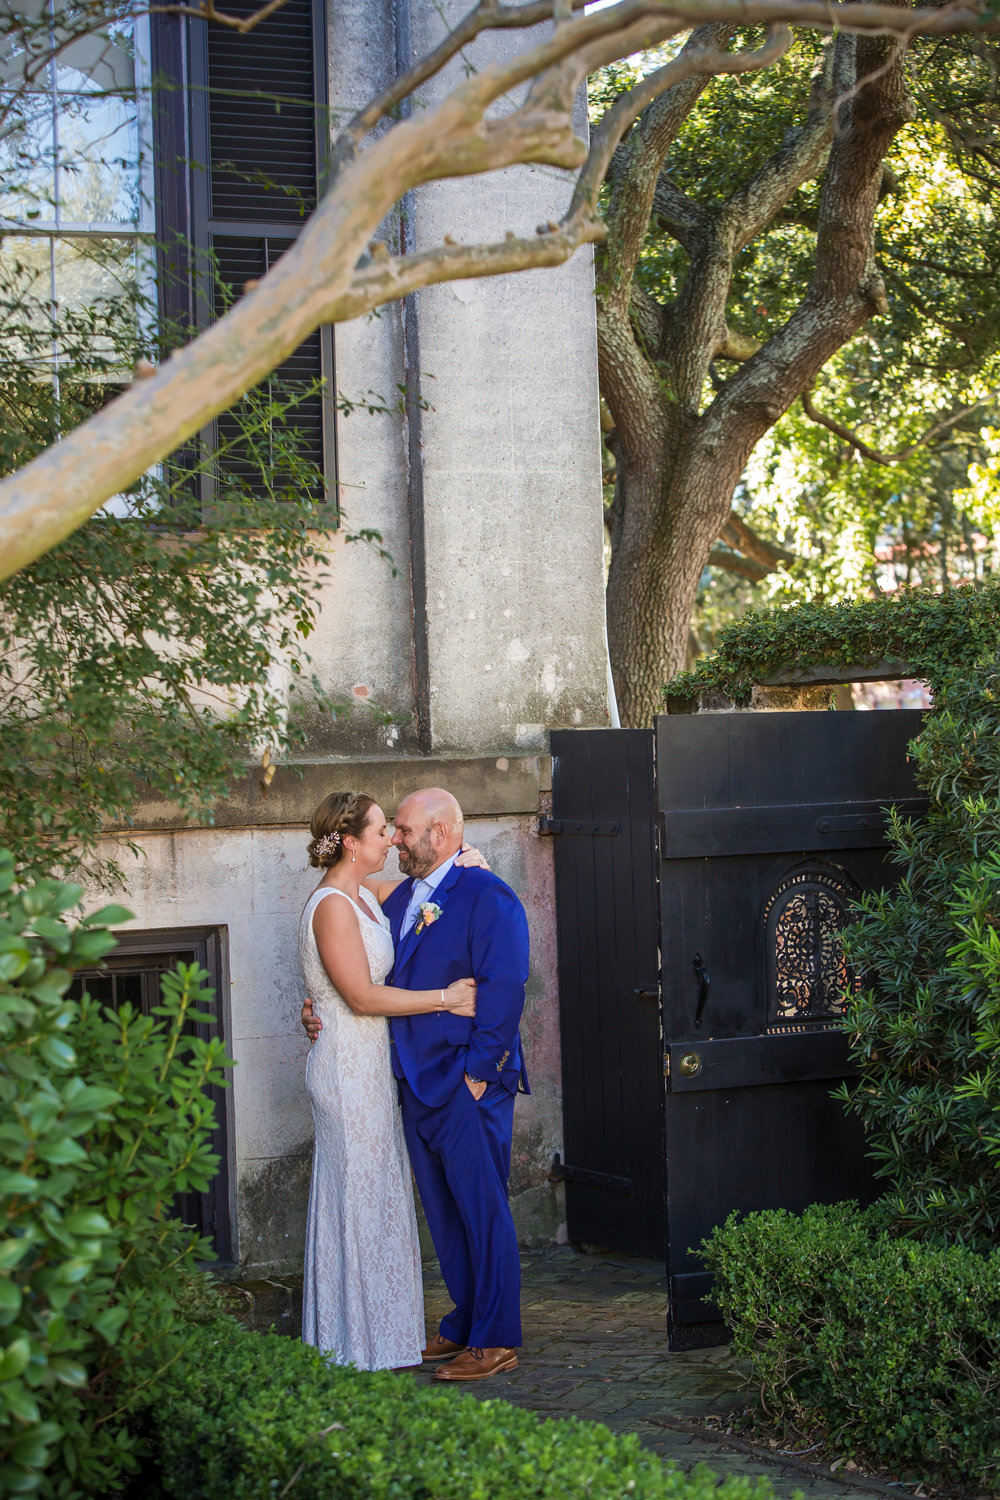 ivory_and_beau_savannah_bridal_shop_ivory_and_beau_florals_lindsey_and_collin_harper_fowlkes_house_the_mansion_on_fosyth_rich_burkhart_photography_savannah_florist_13.jpg